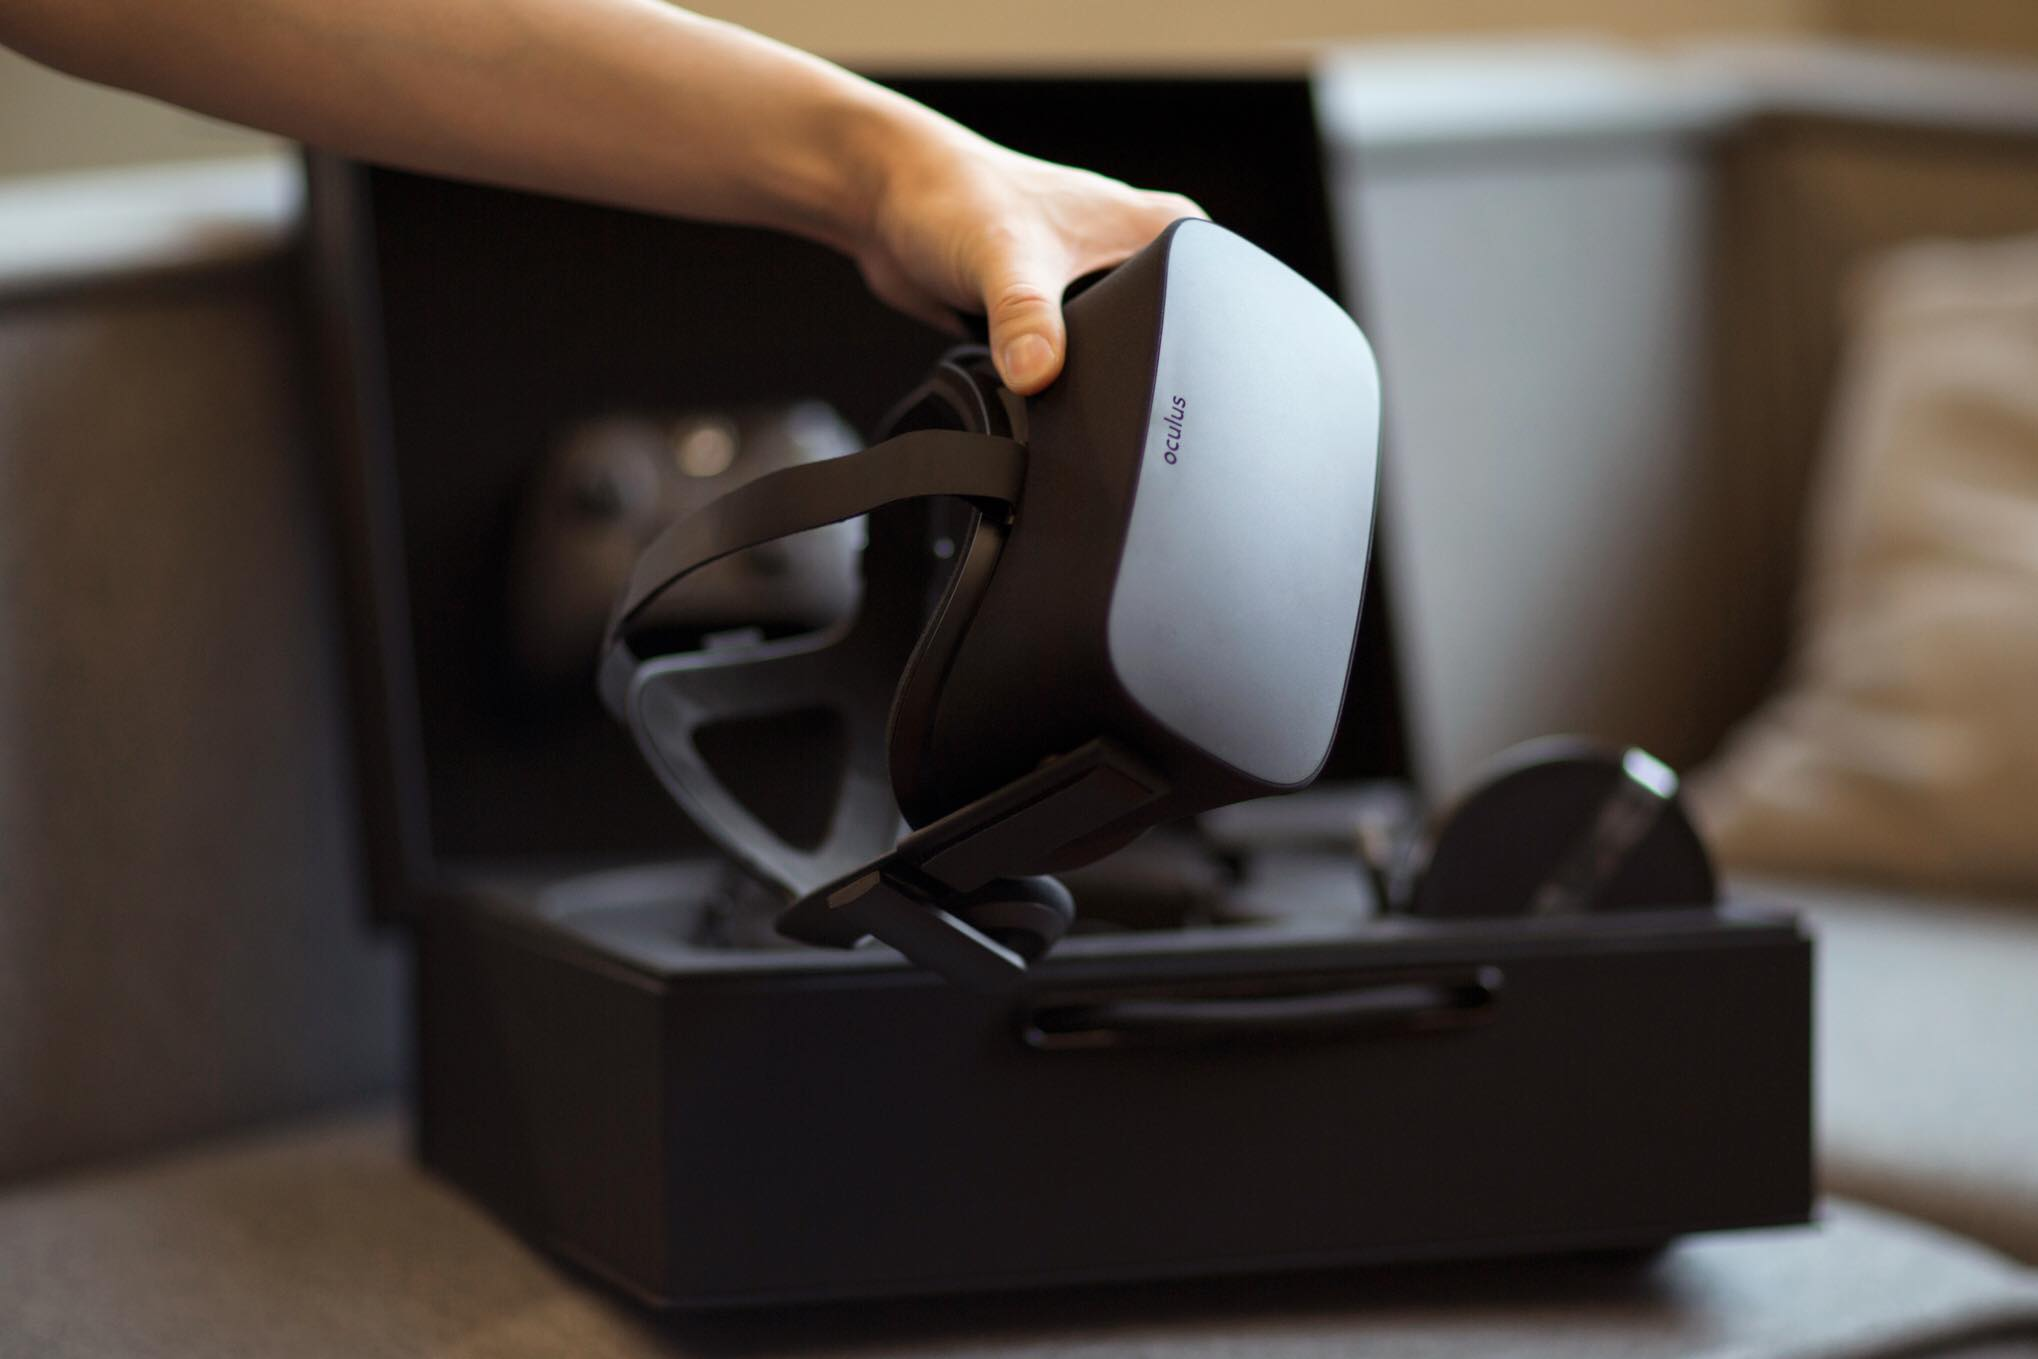 Photo of an Oculus Rift virtual reality headset.